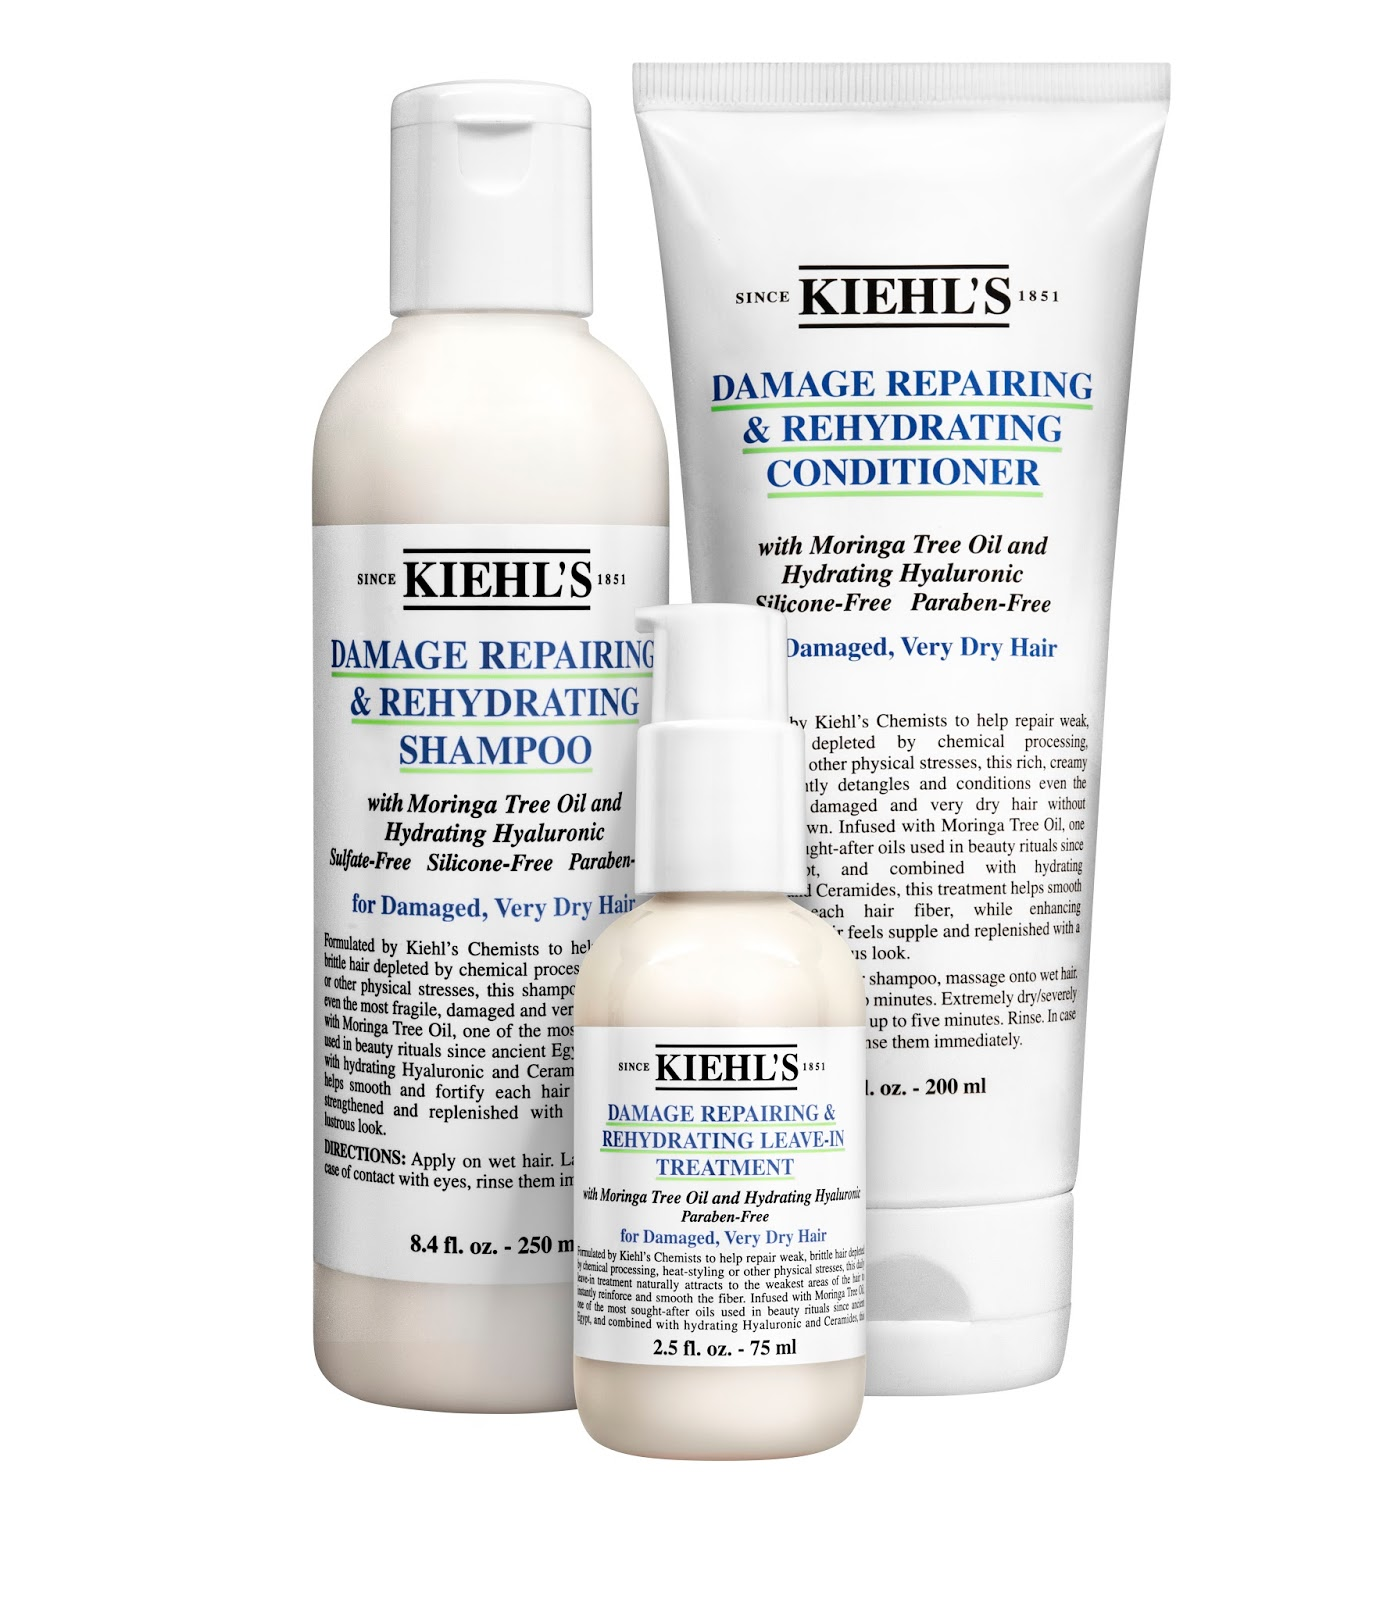 Preview: Kiehl's Damage Repairing & Rehydrating Haircare